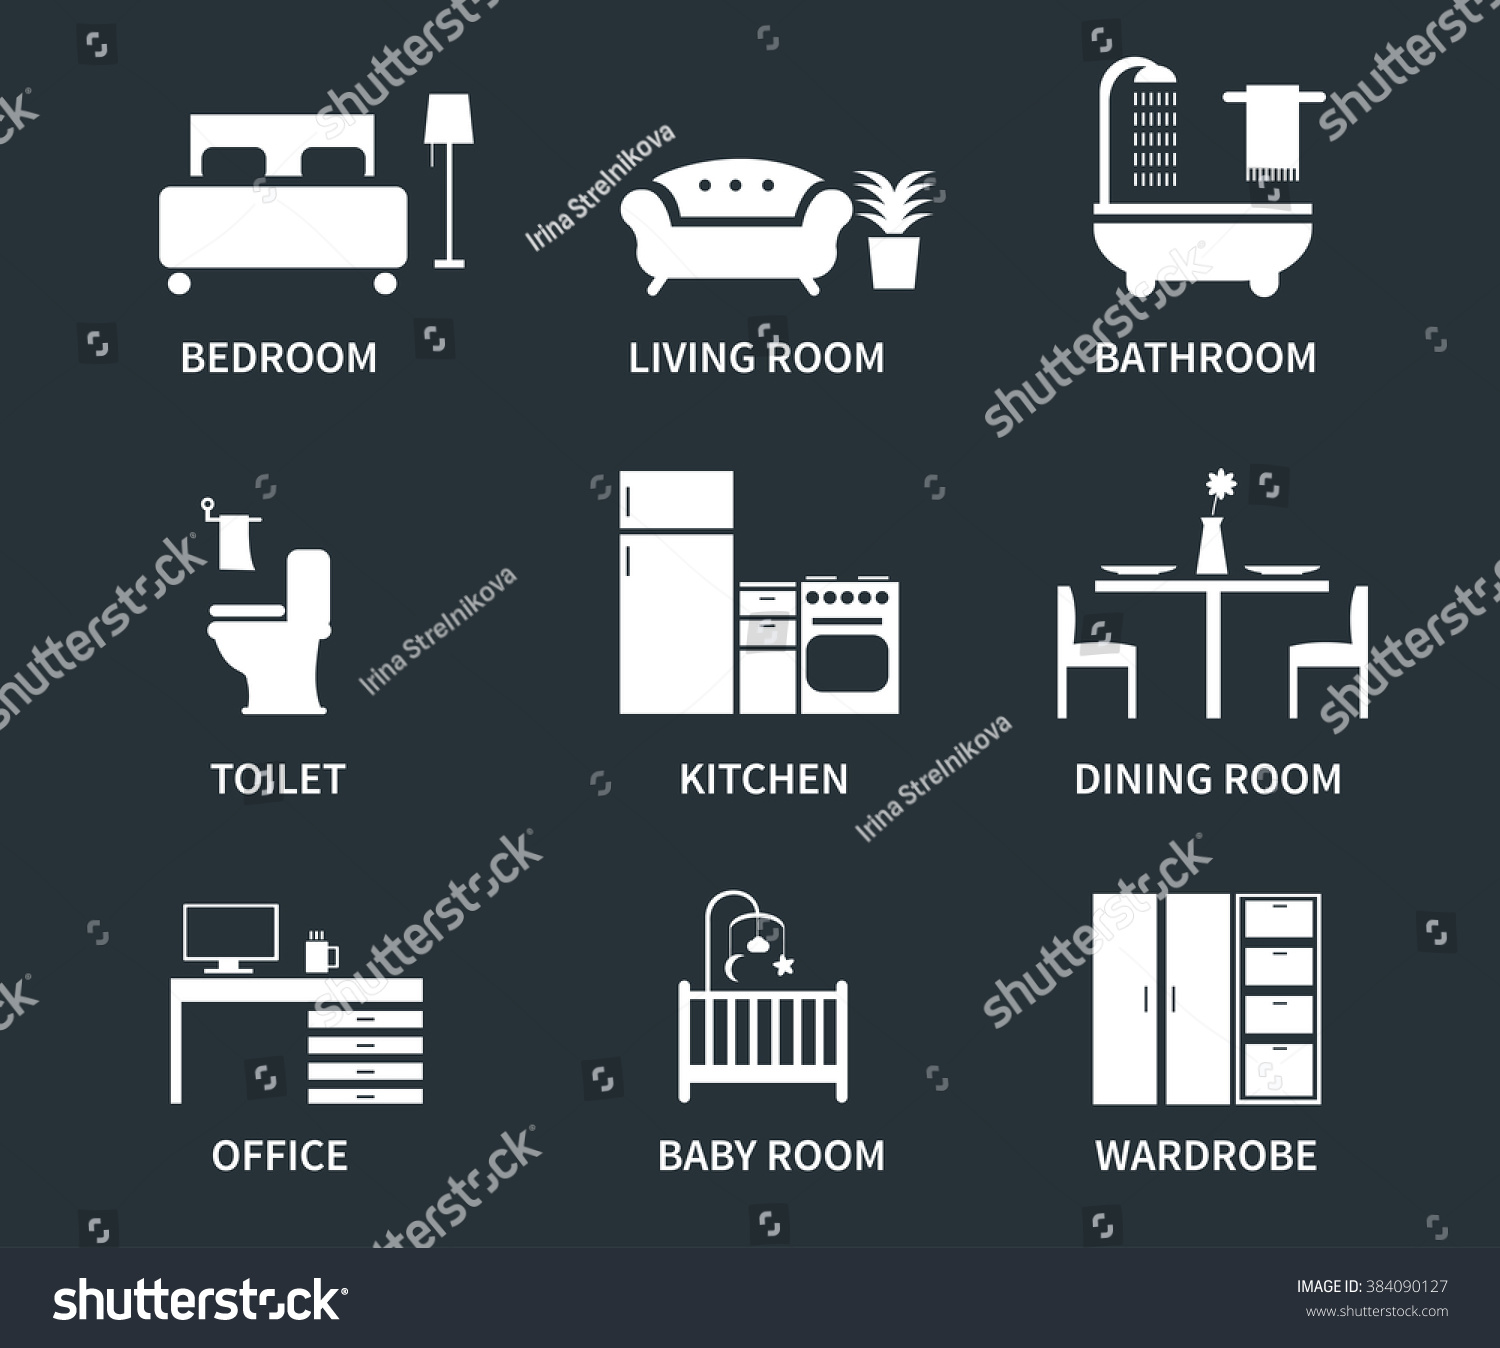 Home Interior Design Icons Bedroom Living Stock Vector 384090127 Shutterstock